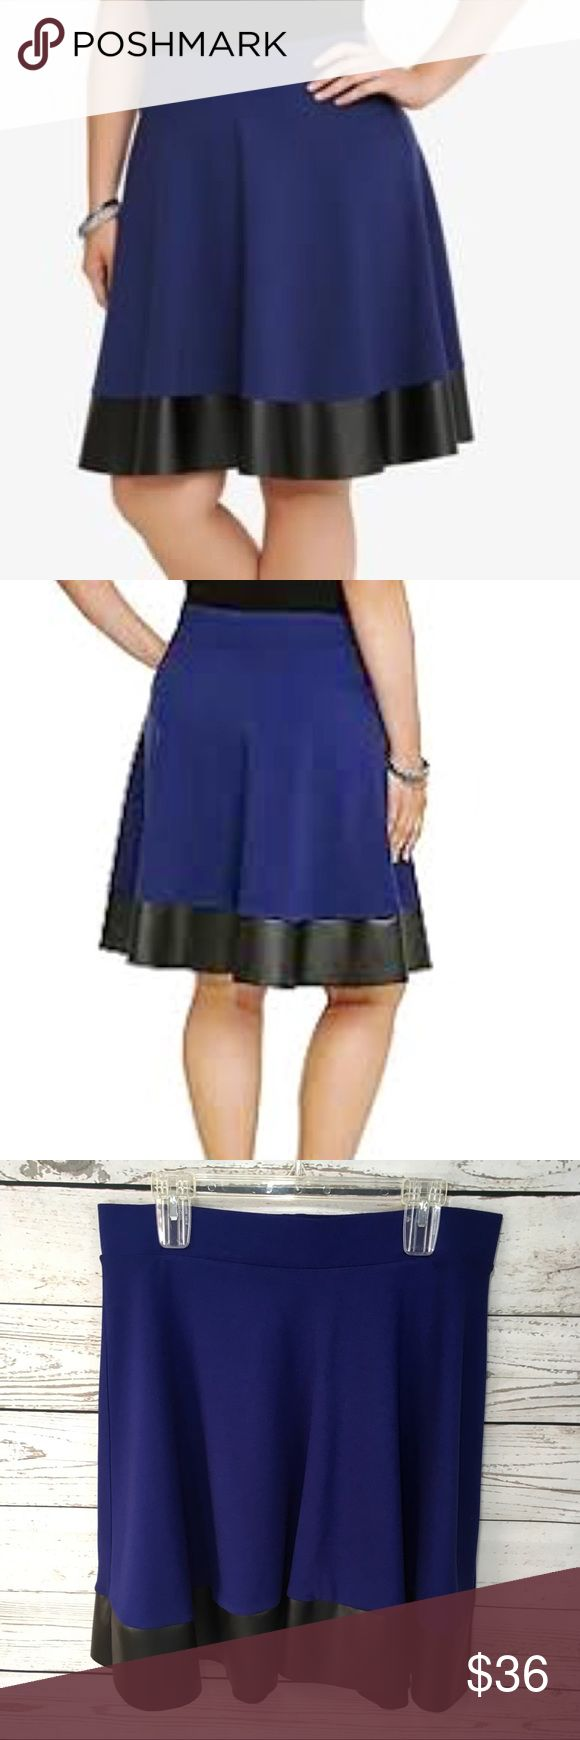 """NWT! Torrid blue & black faux leather skater skirt •Details• Torrid pointe blue stretch skater skirt with black faux leather trim. •Condition• New with tags. (Price tag missing) •Material• 70% rayon 26% nylon 5% spandex •Color• Blue with black faux leather trim All measurements taken while item is laying flat & are approximate •Waist• 17.5"""" stretching to 20"""" •Length• 22"""" Torrid Skirts Circle & Skater"""